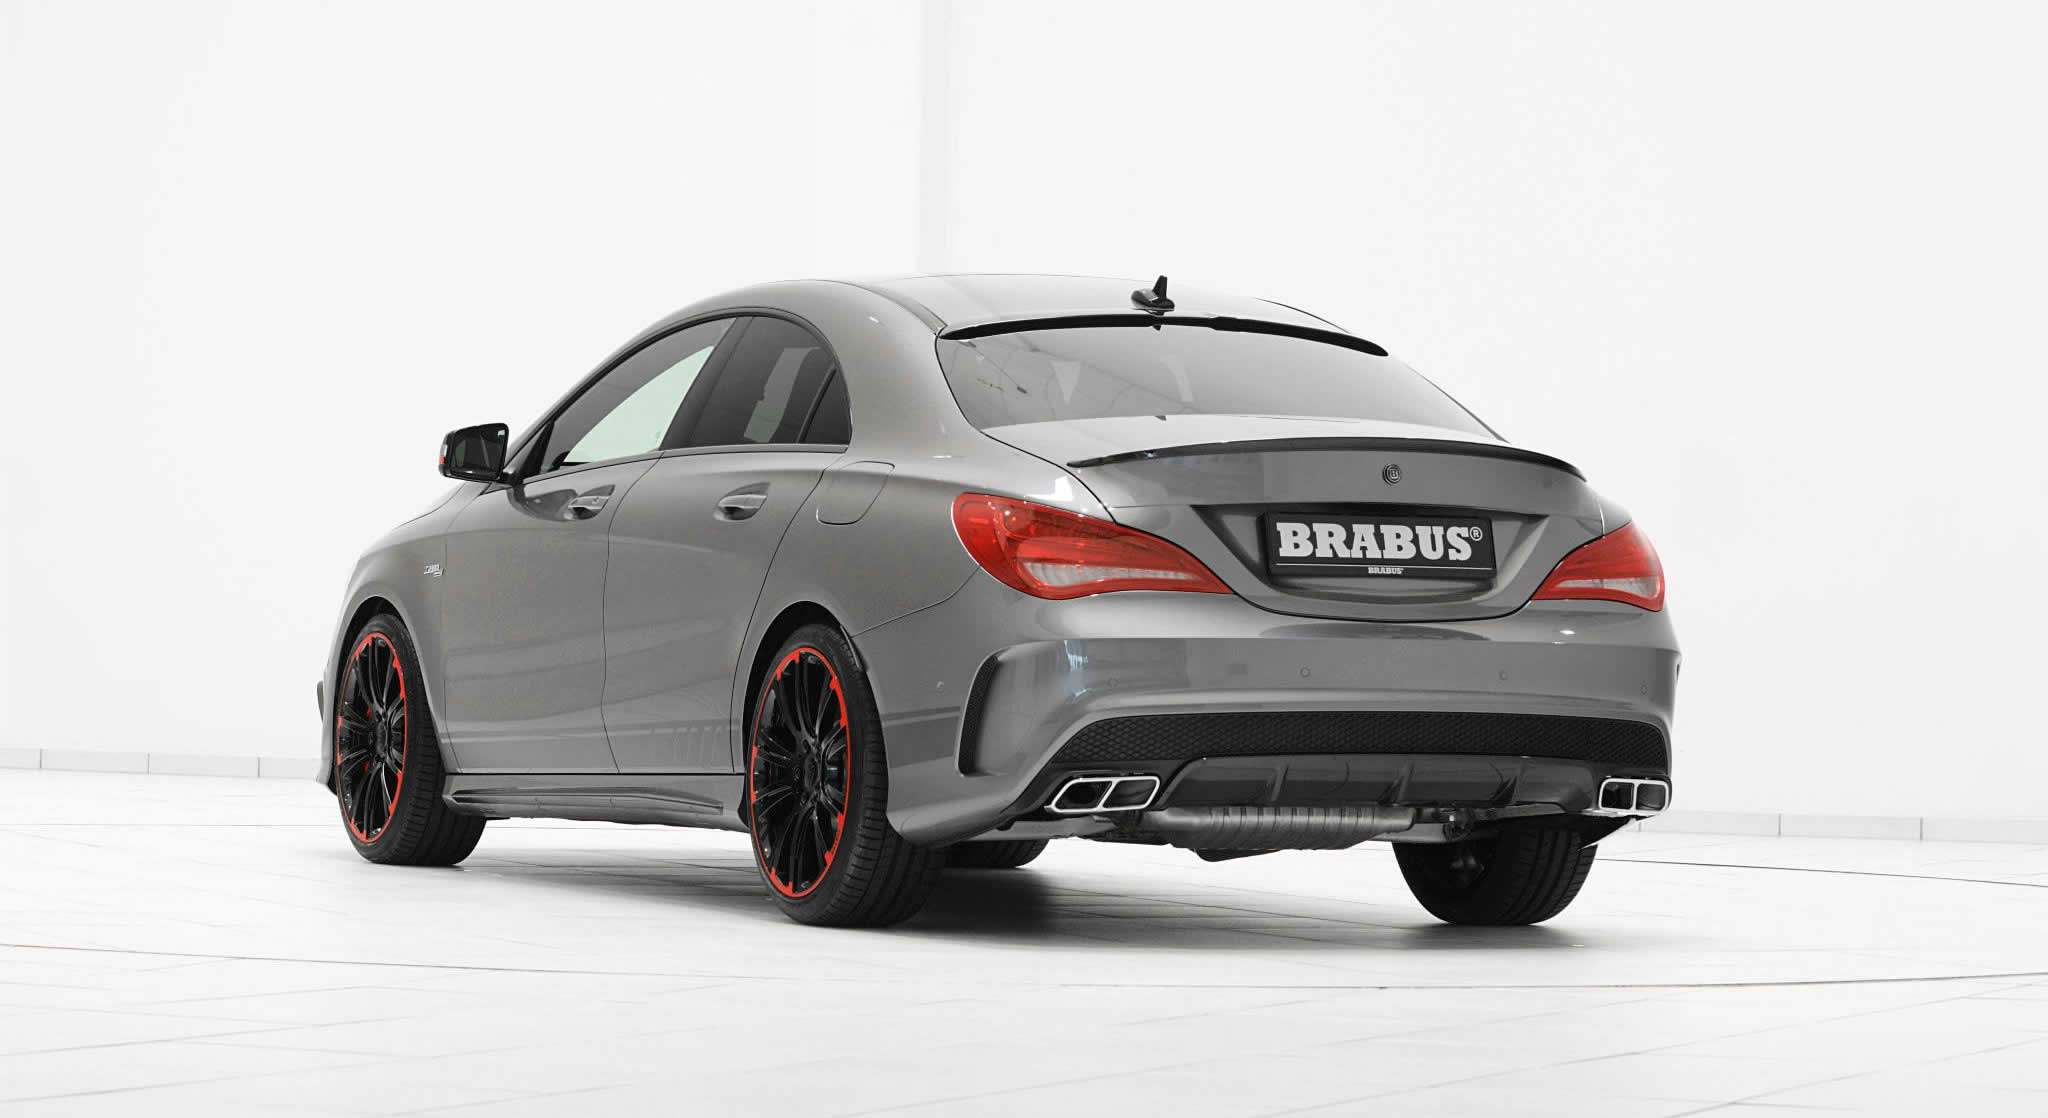 2014 mercedes benz cla45 amg by brabus photos specs and review rs. Black Bedroom Furniture Sets. Home Design Ideas